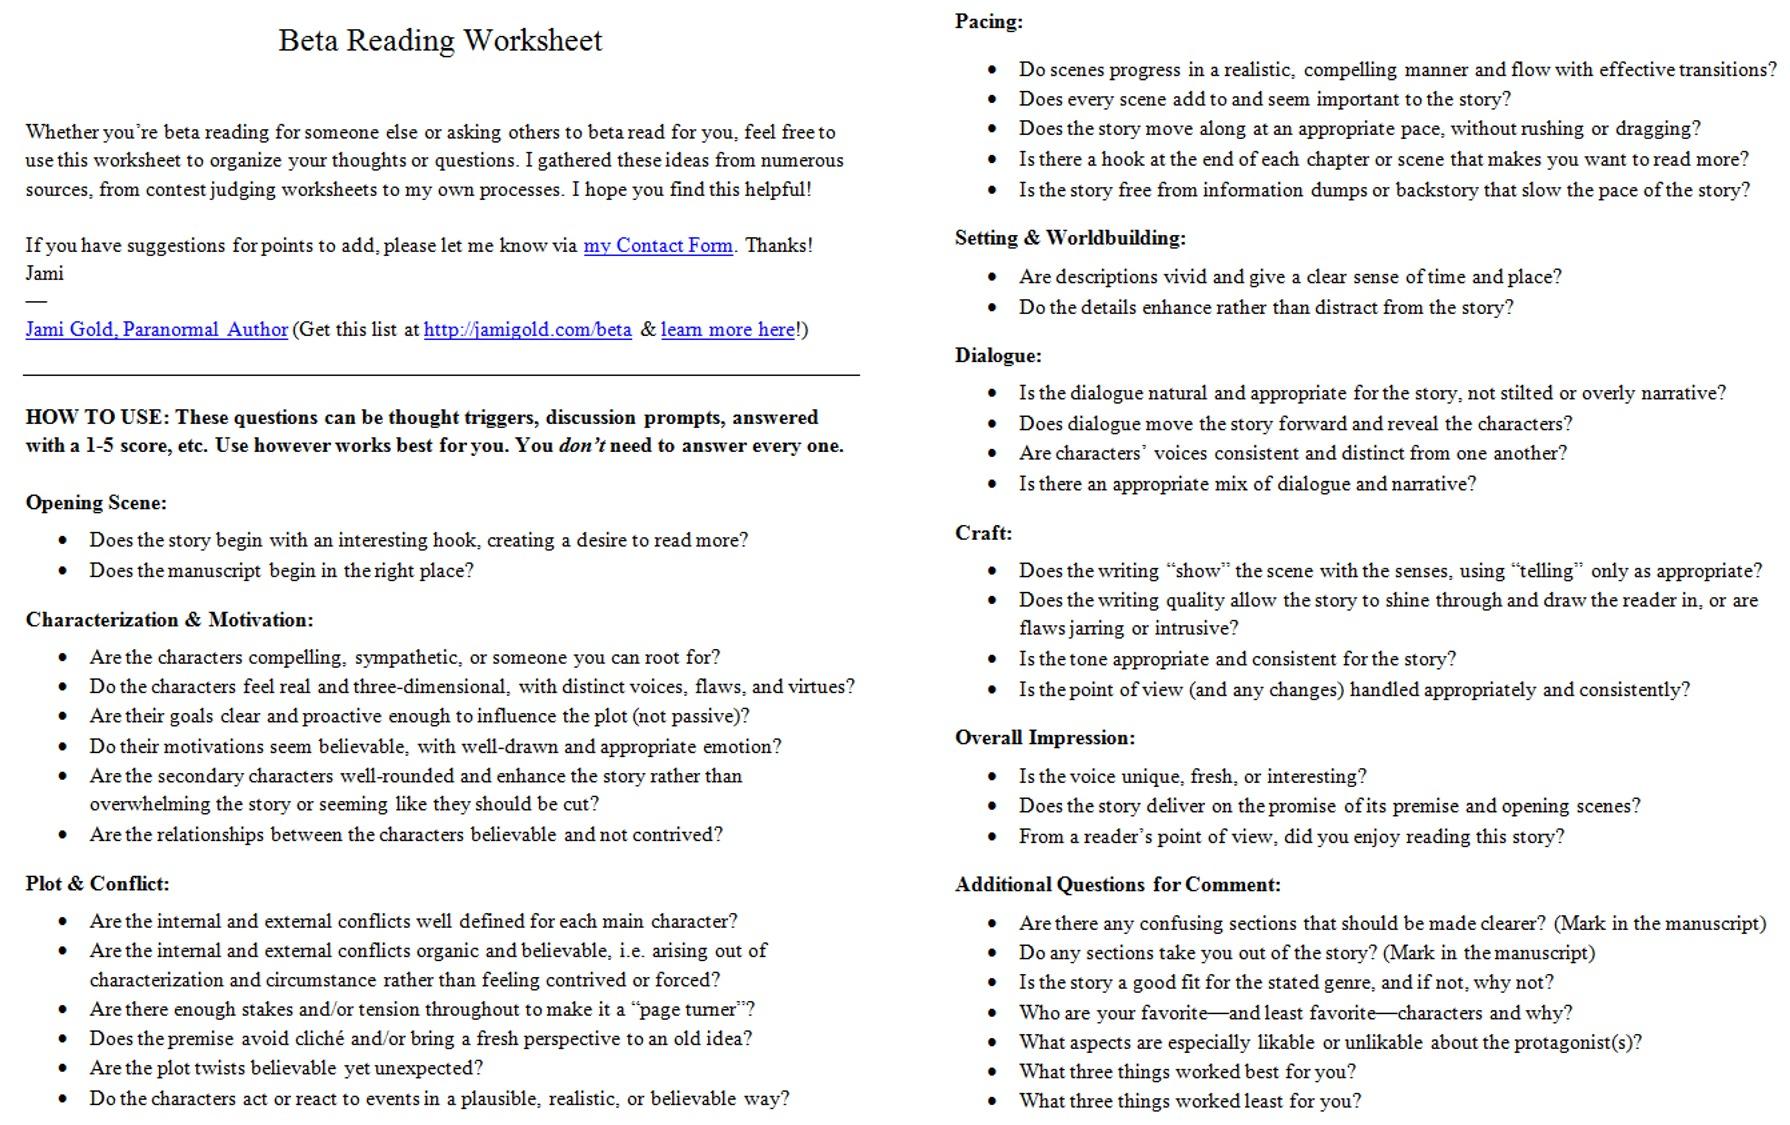 Proatmealus  Personable Worksheets For Writers  Jami Gold Paranormal Author With Luxury Screen Shot Of The Twopage Beta Reading Worksheet With Astonishing K Maths Worksheets Also Hindi Alphabet Worksheet In Addition Circumference And Area Of Circle Worksheets And Worksheet On Prepositions As Well As Interrogative Sentence Worksheet Additionally Wet And Dry Environments Worksheets From Jamigoldcom With Proatmealus  Luxury Worksheets For Writers  Jami Gold Paranormal Author With Astonishing Screen Shot Of The Twopage Beta Reading Worksheet And Personable K Maths Worksheets Also Hindi Alphabet Worksheet In Addition Circumference And Area Of Circle Worksheets From Jamigoldcom